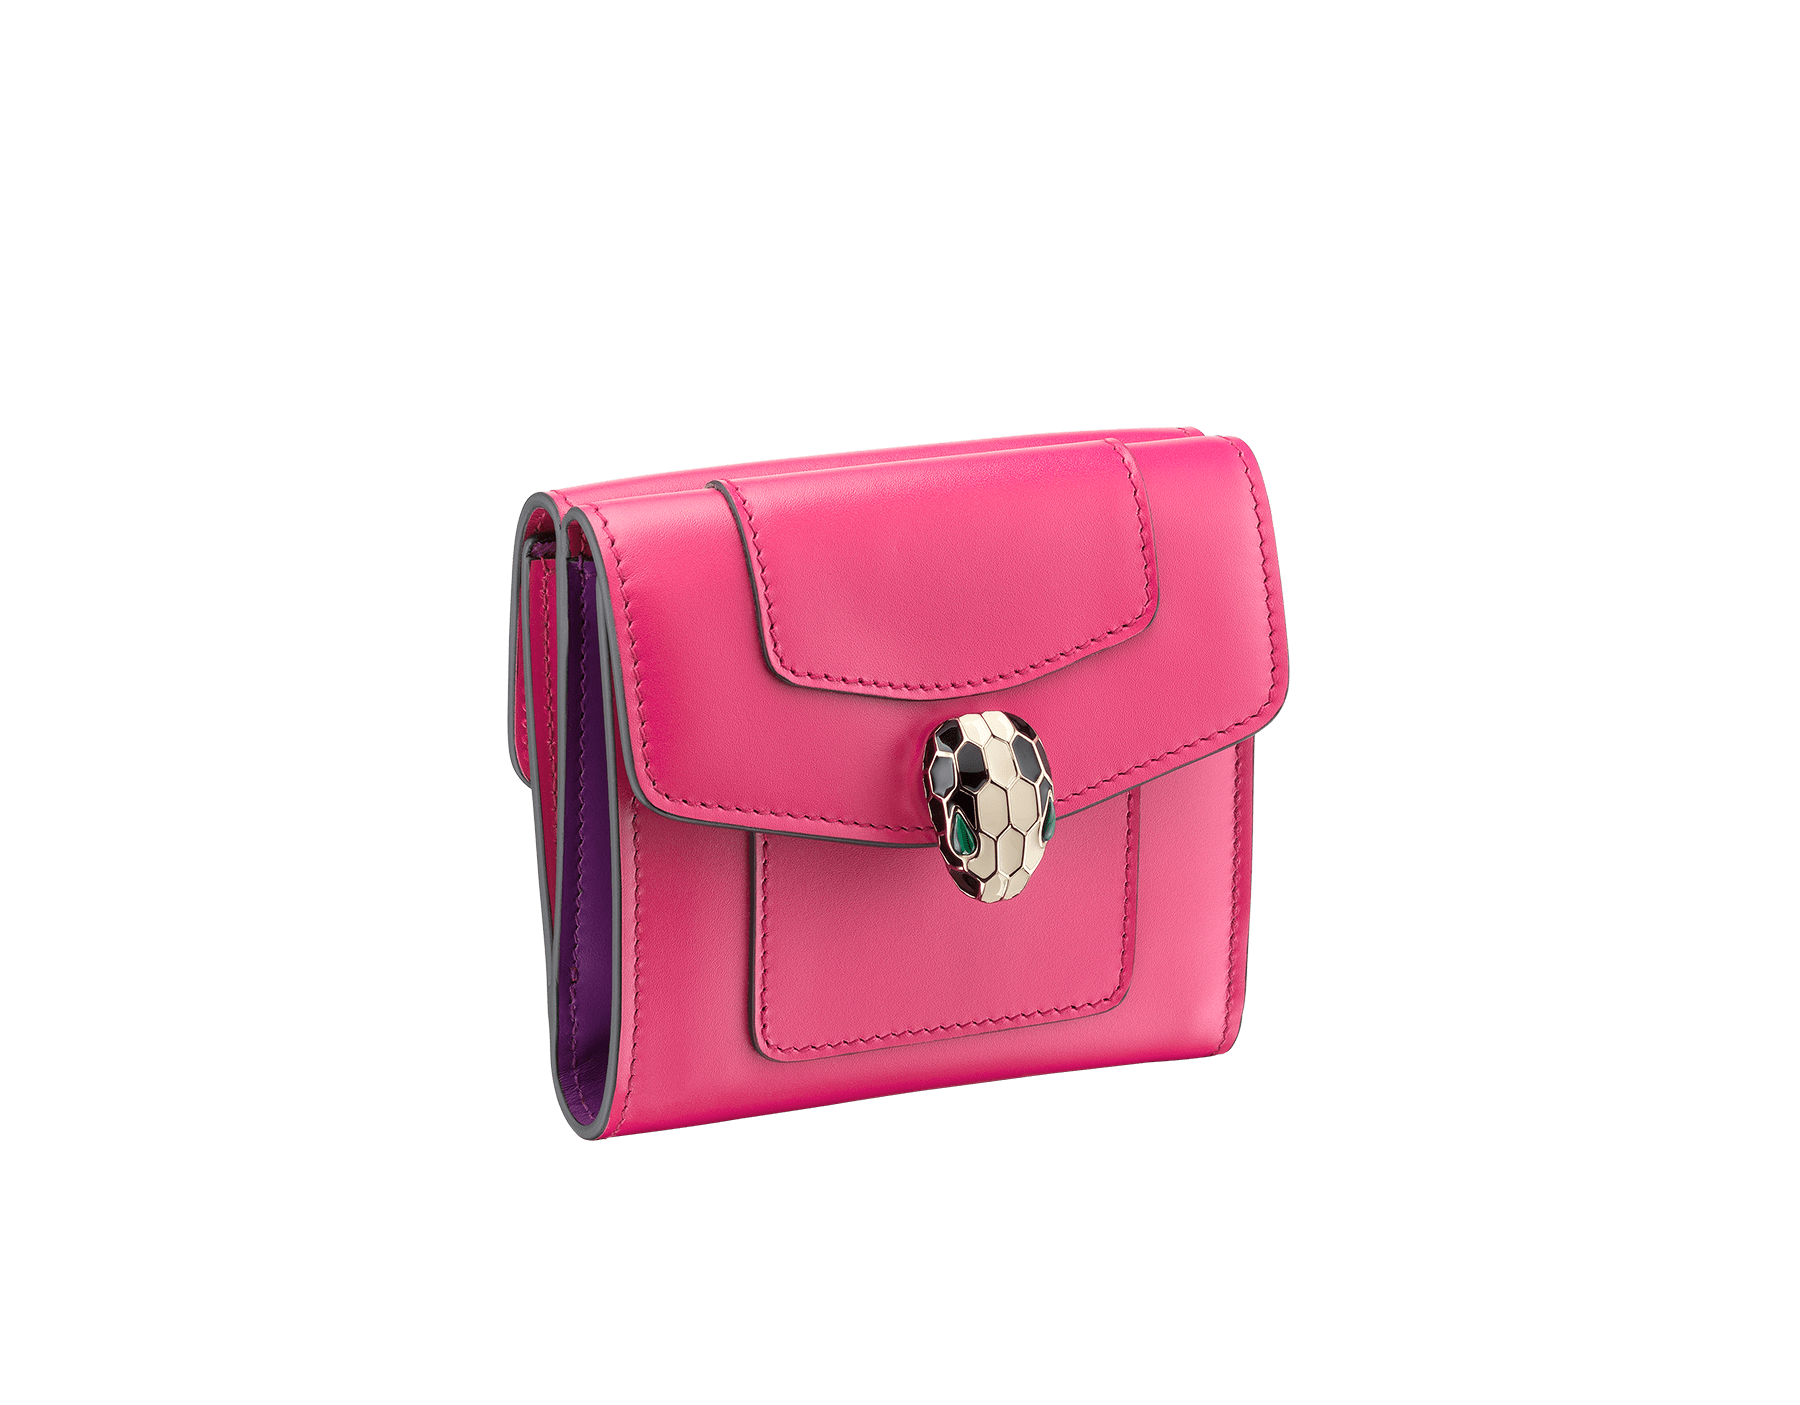 Serpenti Forever square compact wallet in jazzy tourmaline and aster amethyst calf leather. Iconic snakehead closure in black and white enamel, with green malachite eyes. 287163 image 1